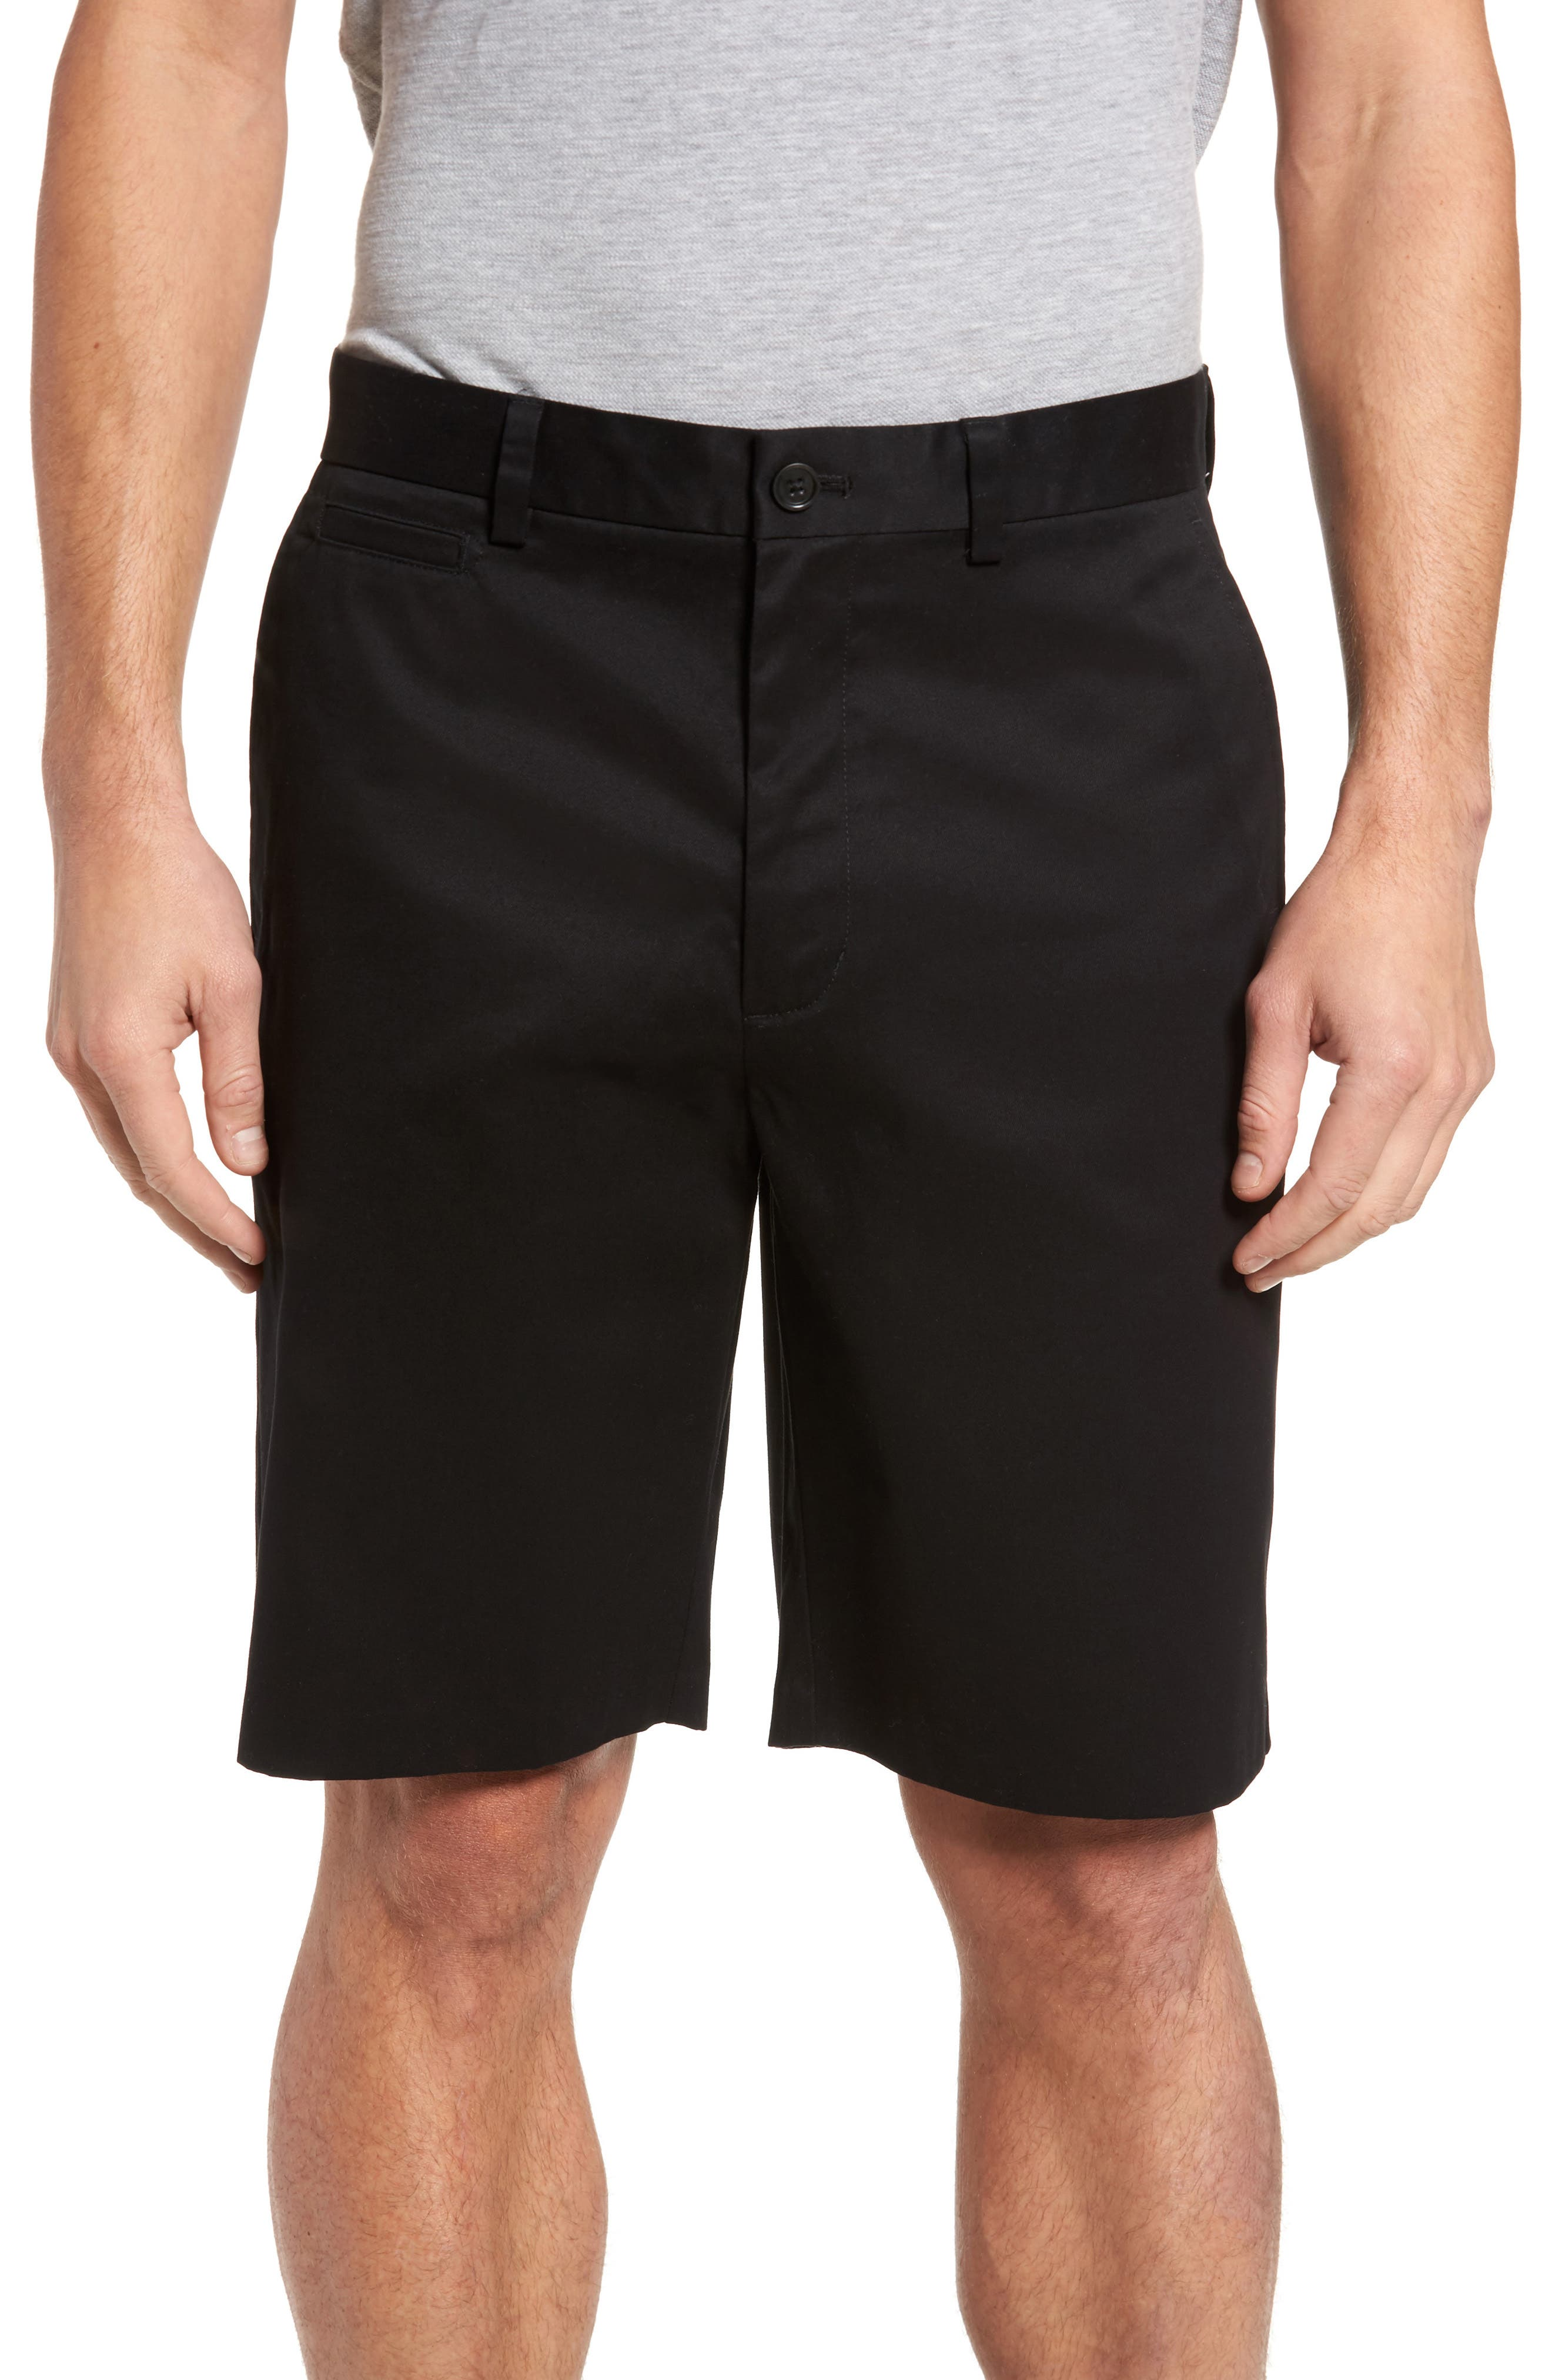 Smartcare<sup>™</sup> Flat Front Shorts,                             Main thumbnail 1, color,                             BLACK